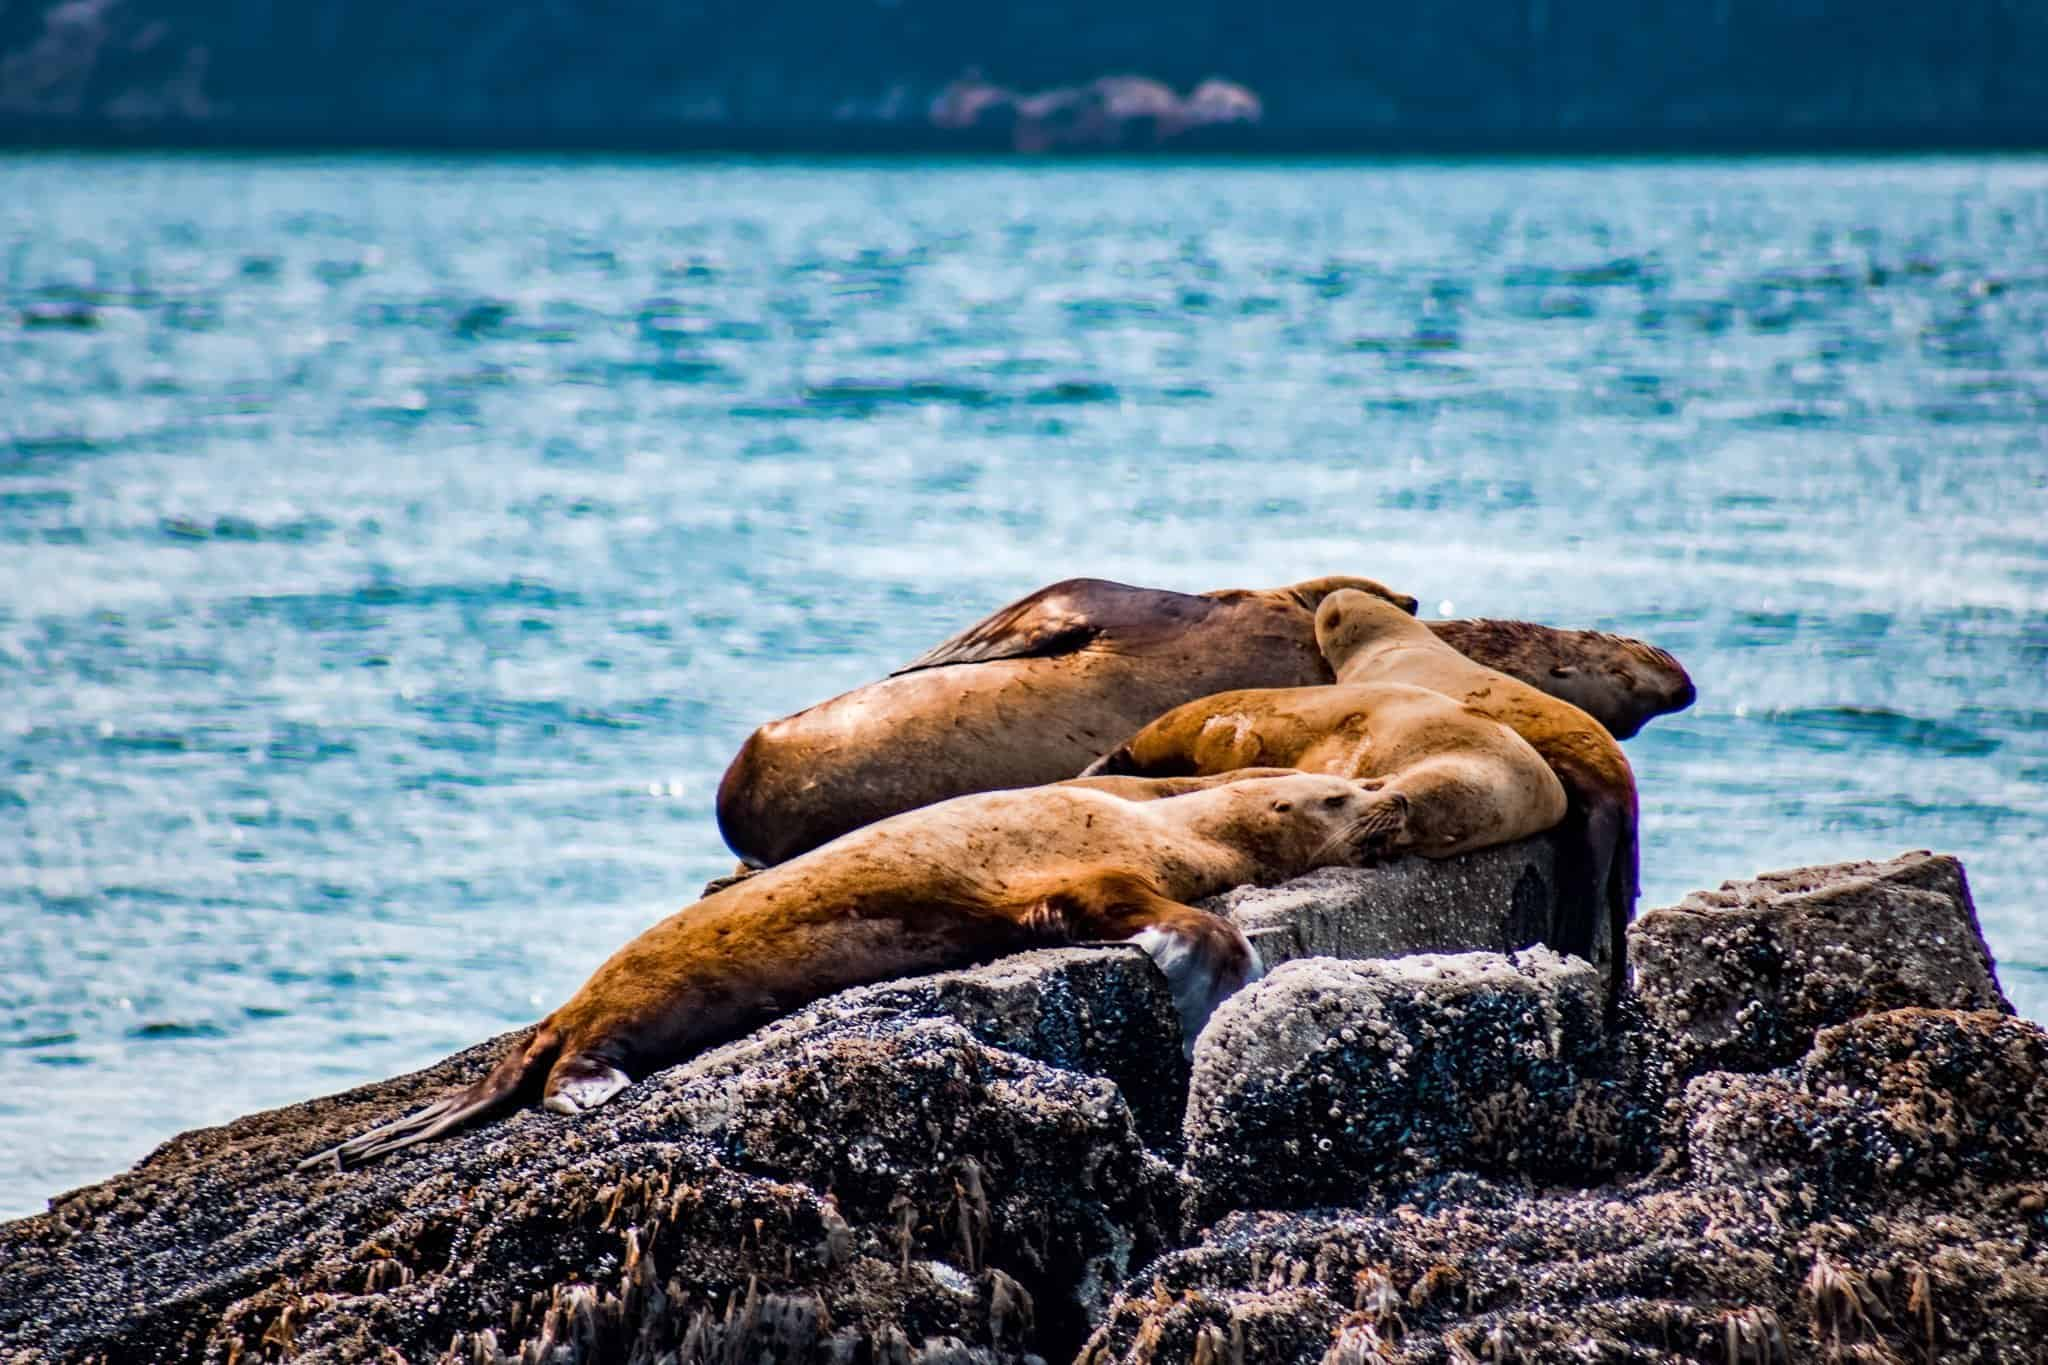 Sea Lions on Pursuit Collection Cruise Kenai Fjord Alaska - The Next Trip